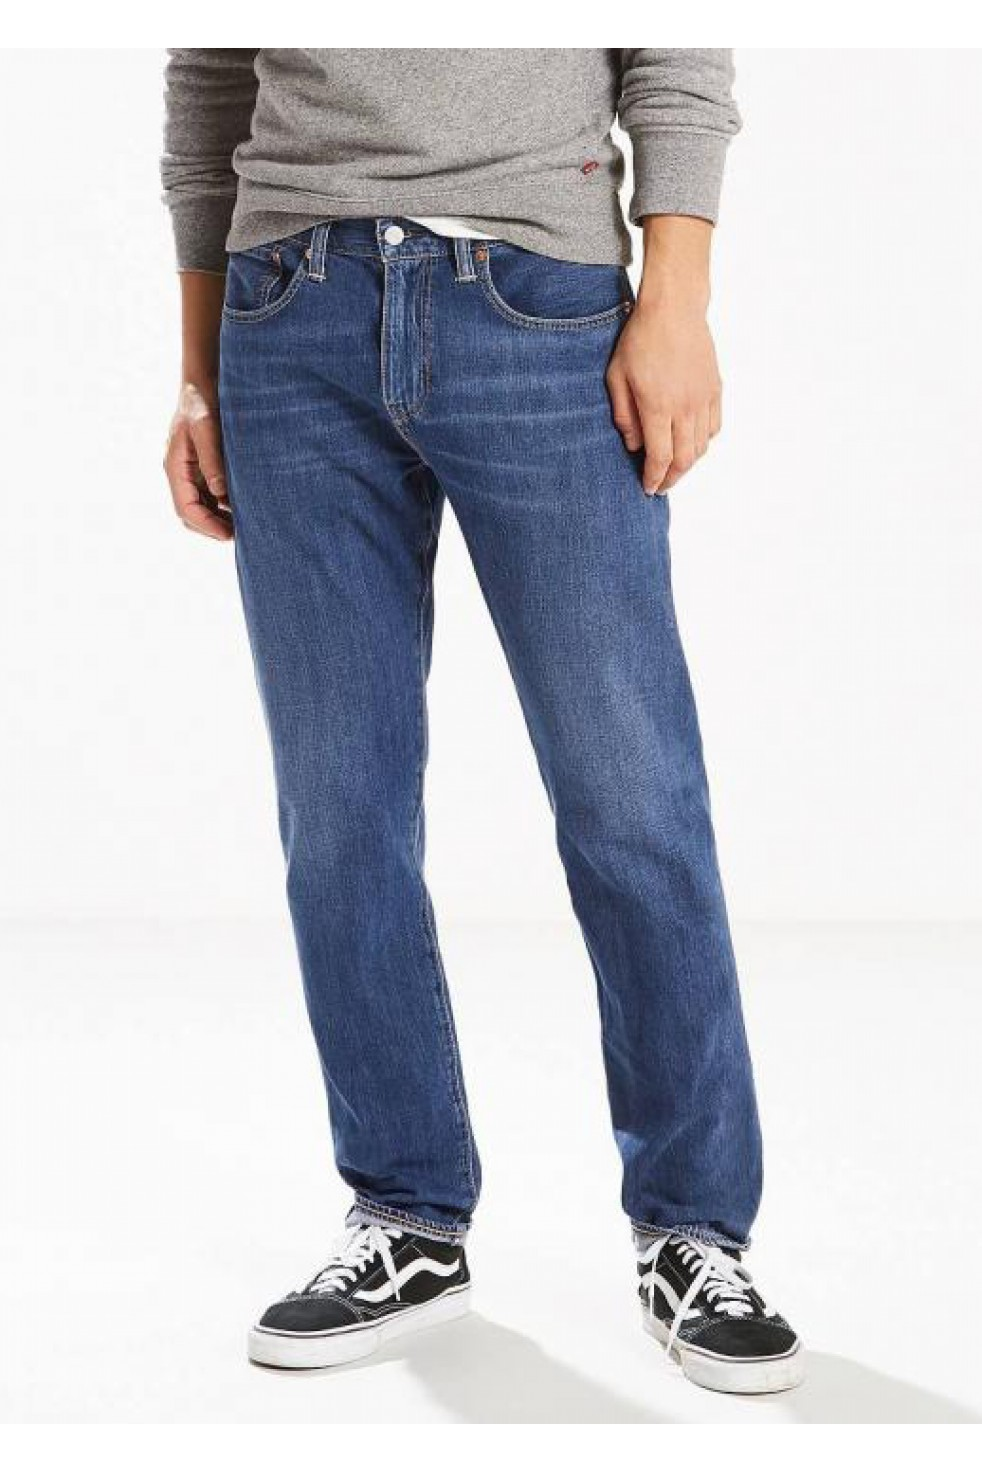 Levis Erkek Jean Pantolon 502 Regular Taper 29507-0120